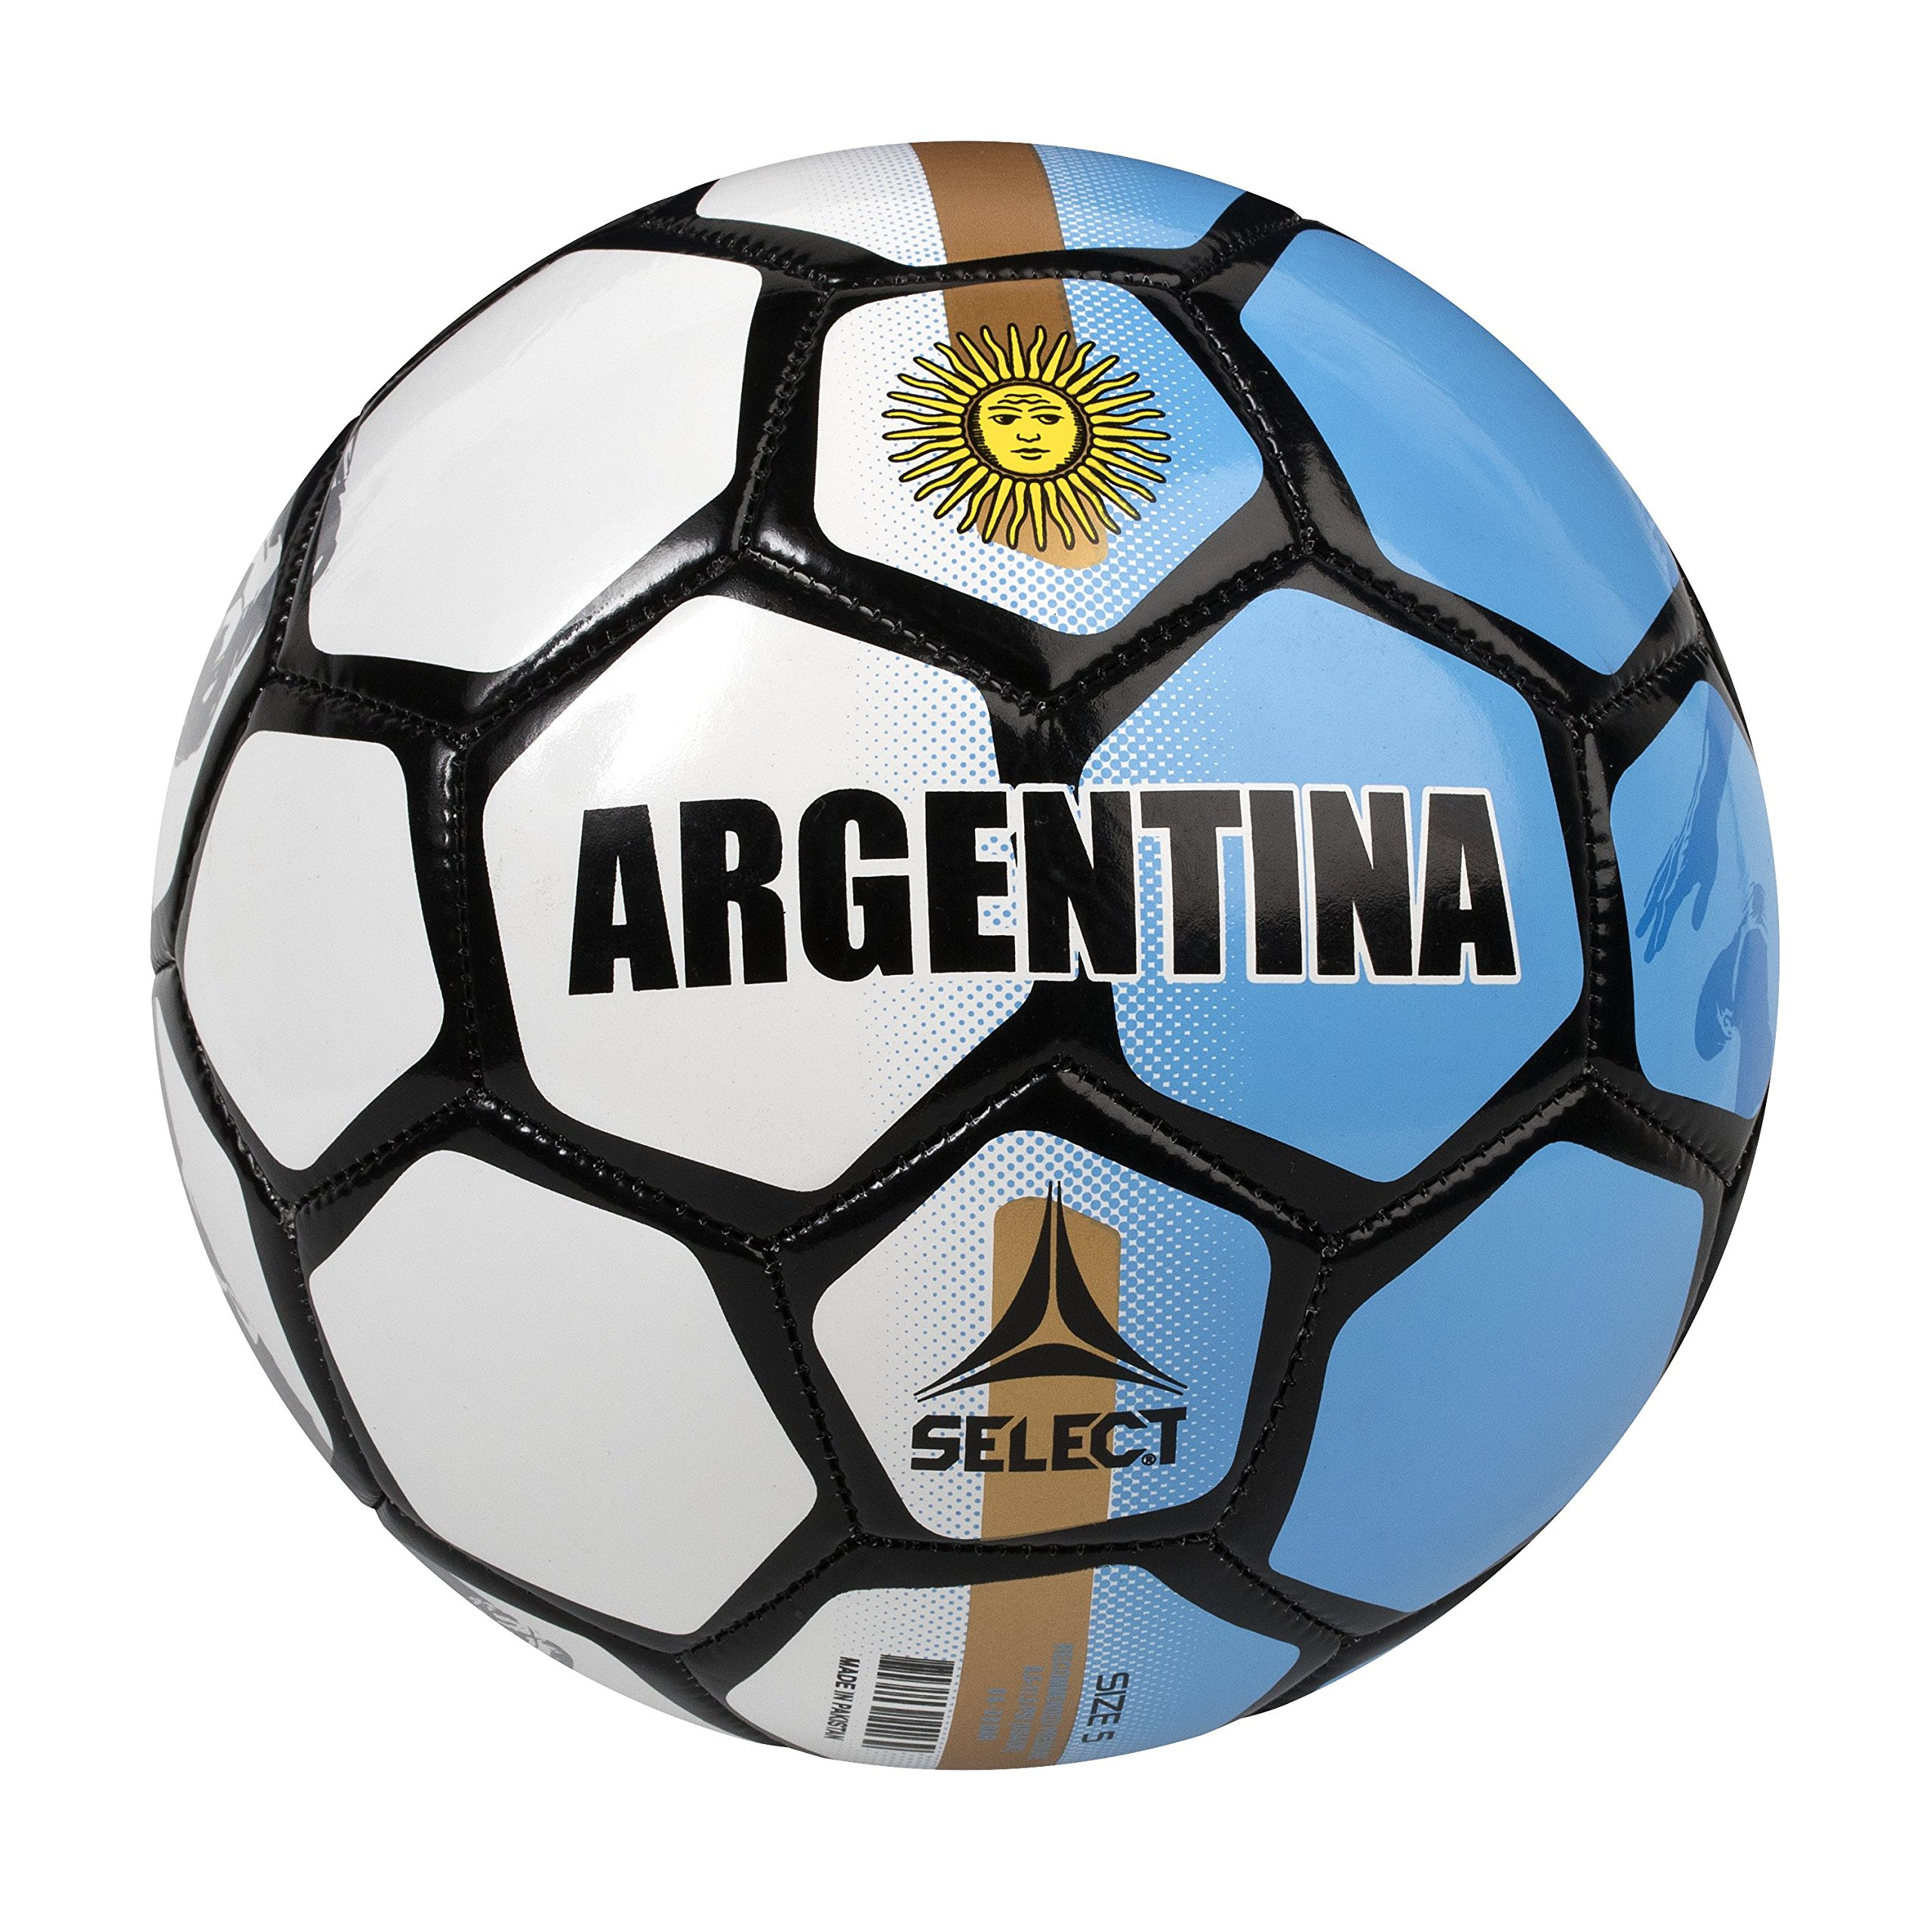 SELECT Argentina World Cup Country Soccer Ball - Skills Ball - 47 cm